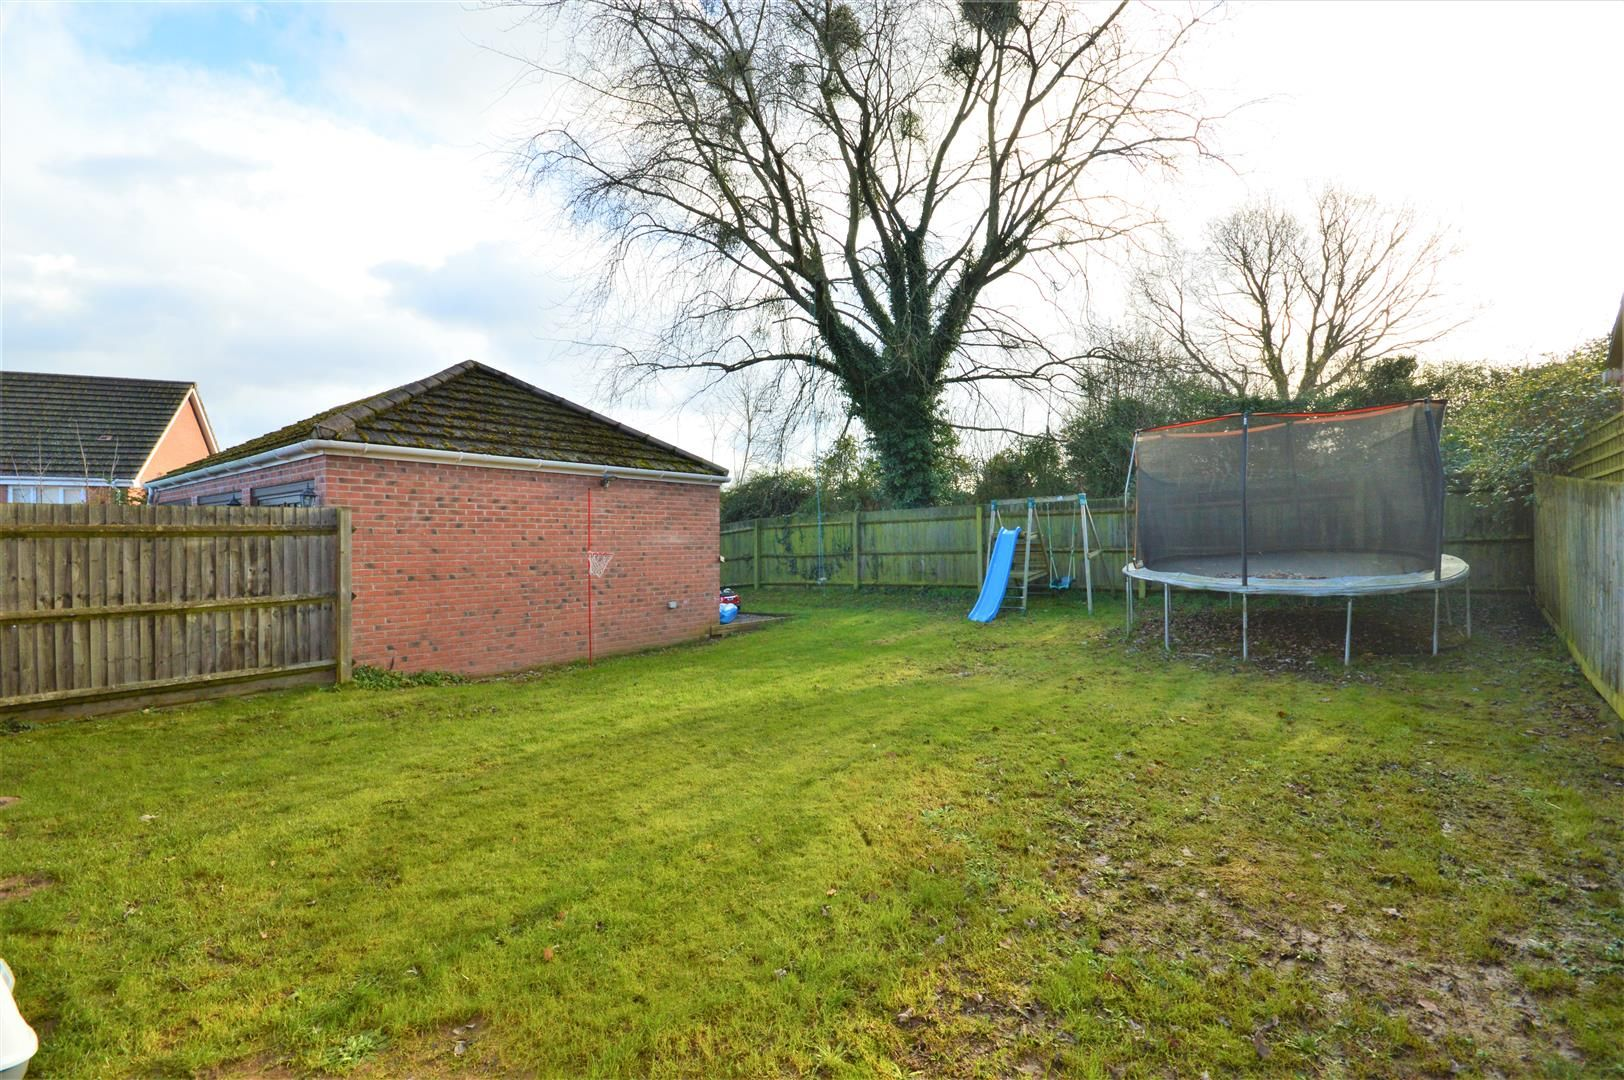 3 bed detached for sale in Hereford  - Property Image 1